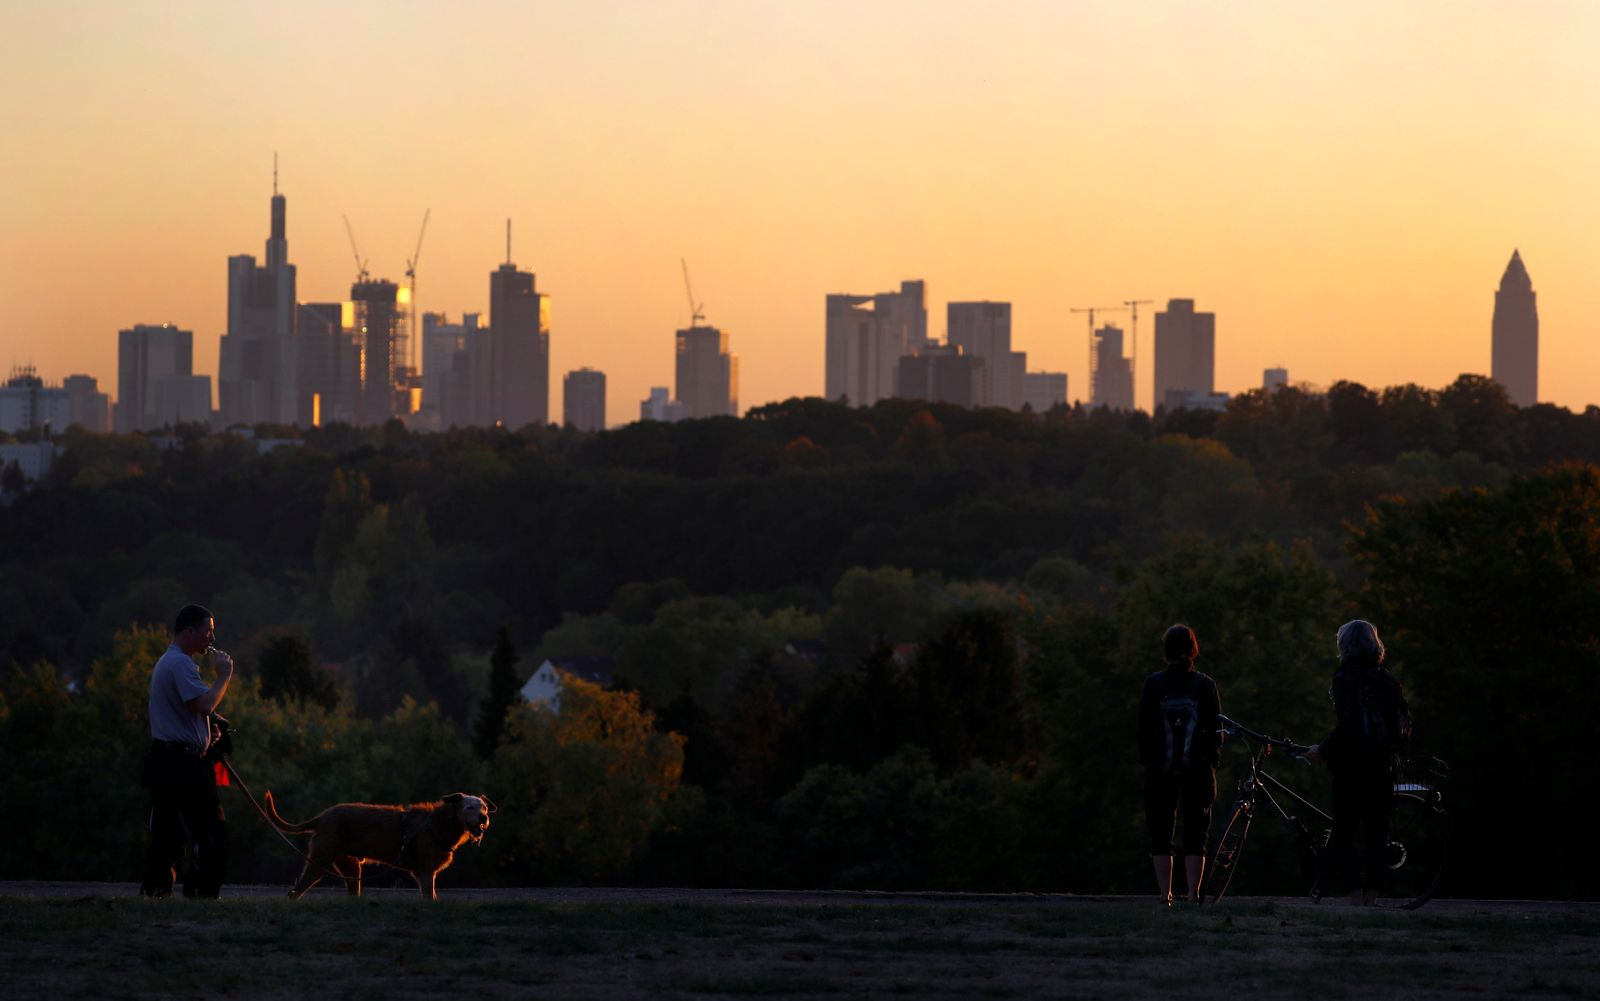 People enjoy the view of the skyline with its financial district ion early evening in Frankfurt